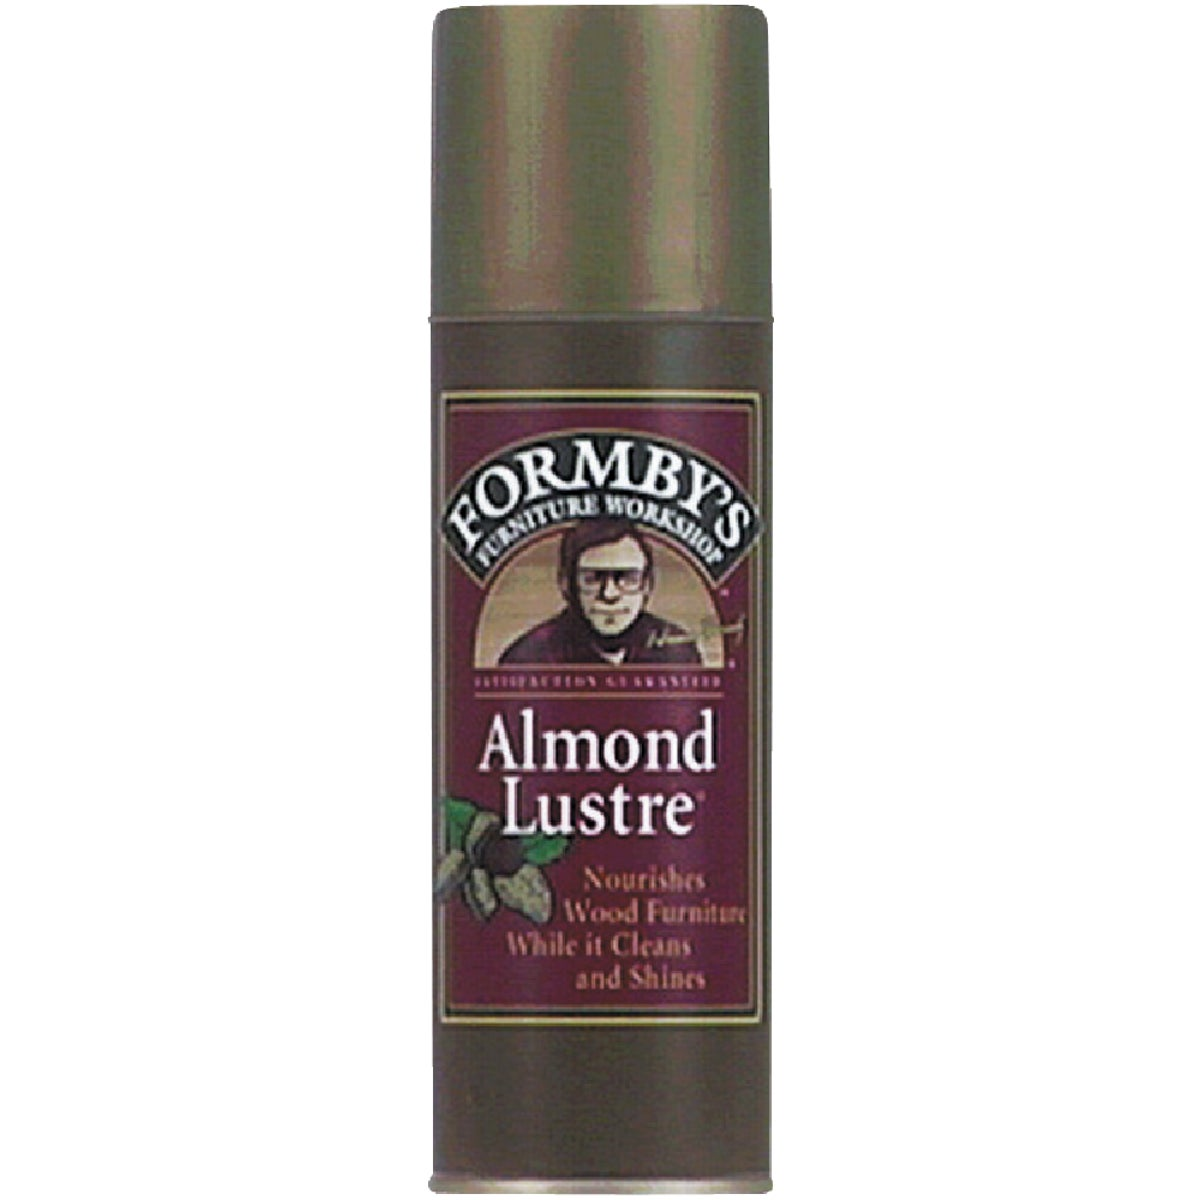 ALMOND LUSTR WOOD POLISH